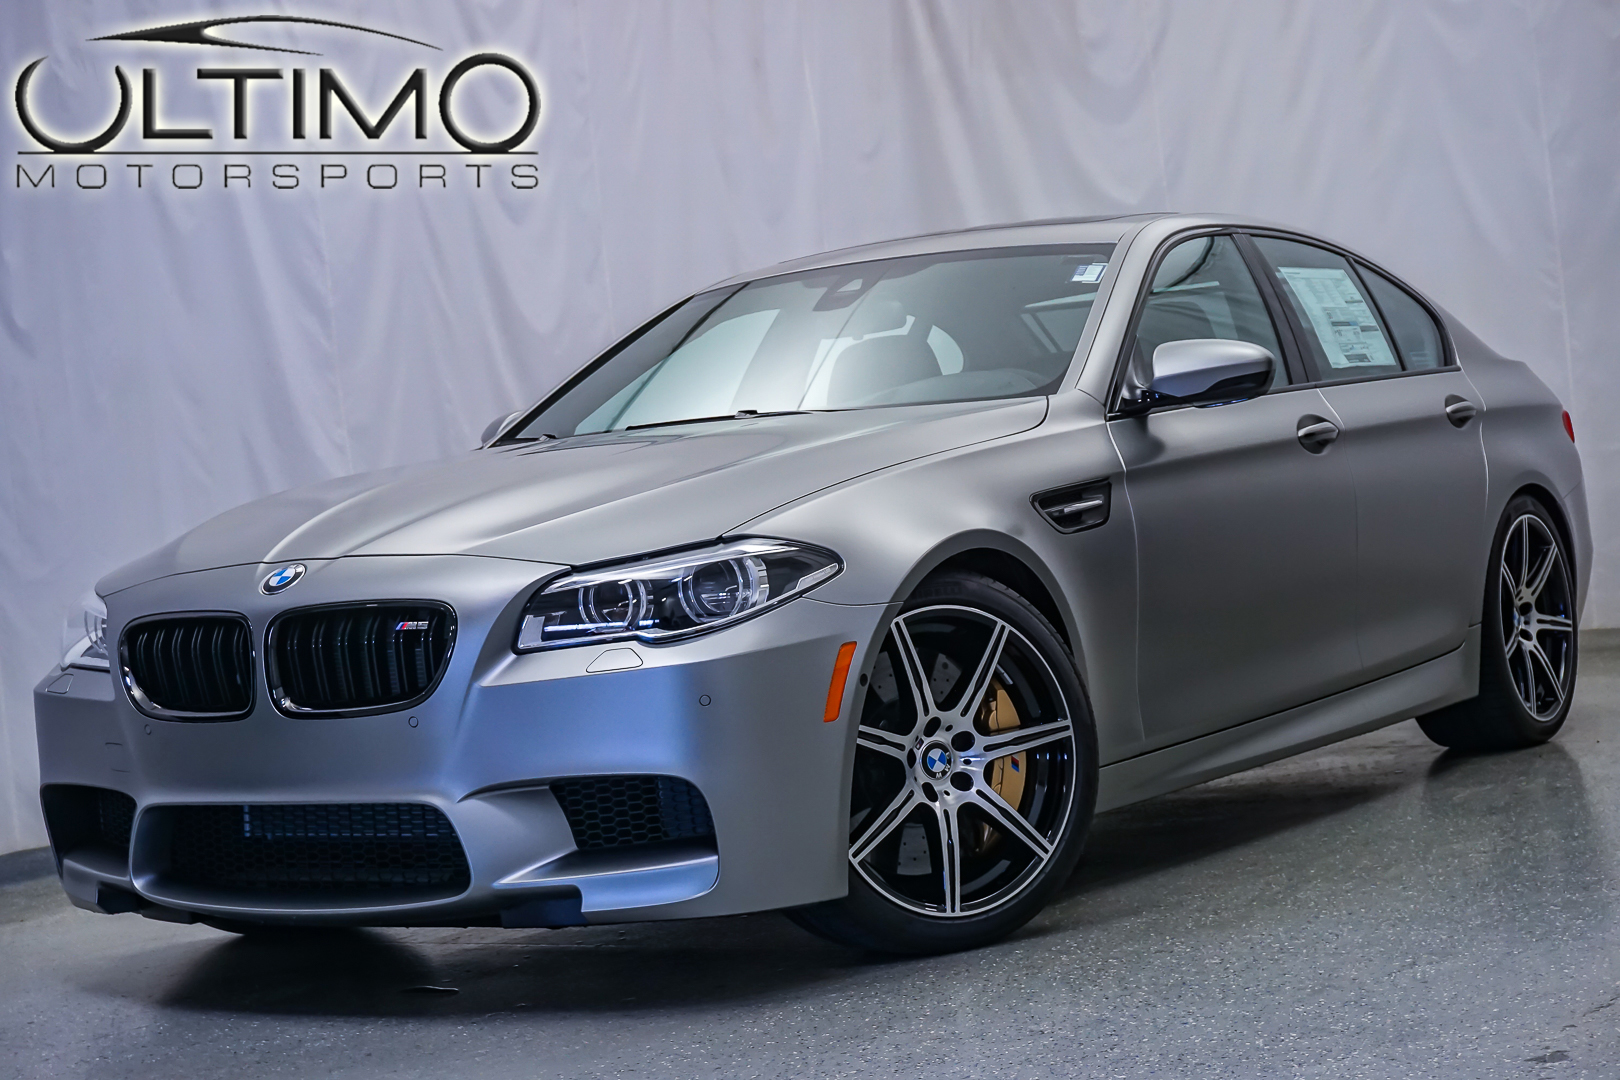 PreOwned 2015 BMW M5 JAHRE 30TH ANNIVERSARY M5 600HP MSRP